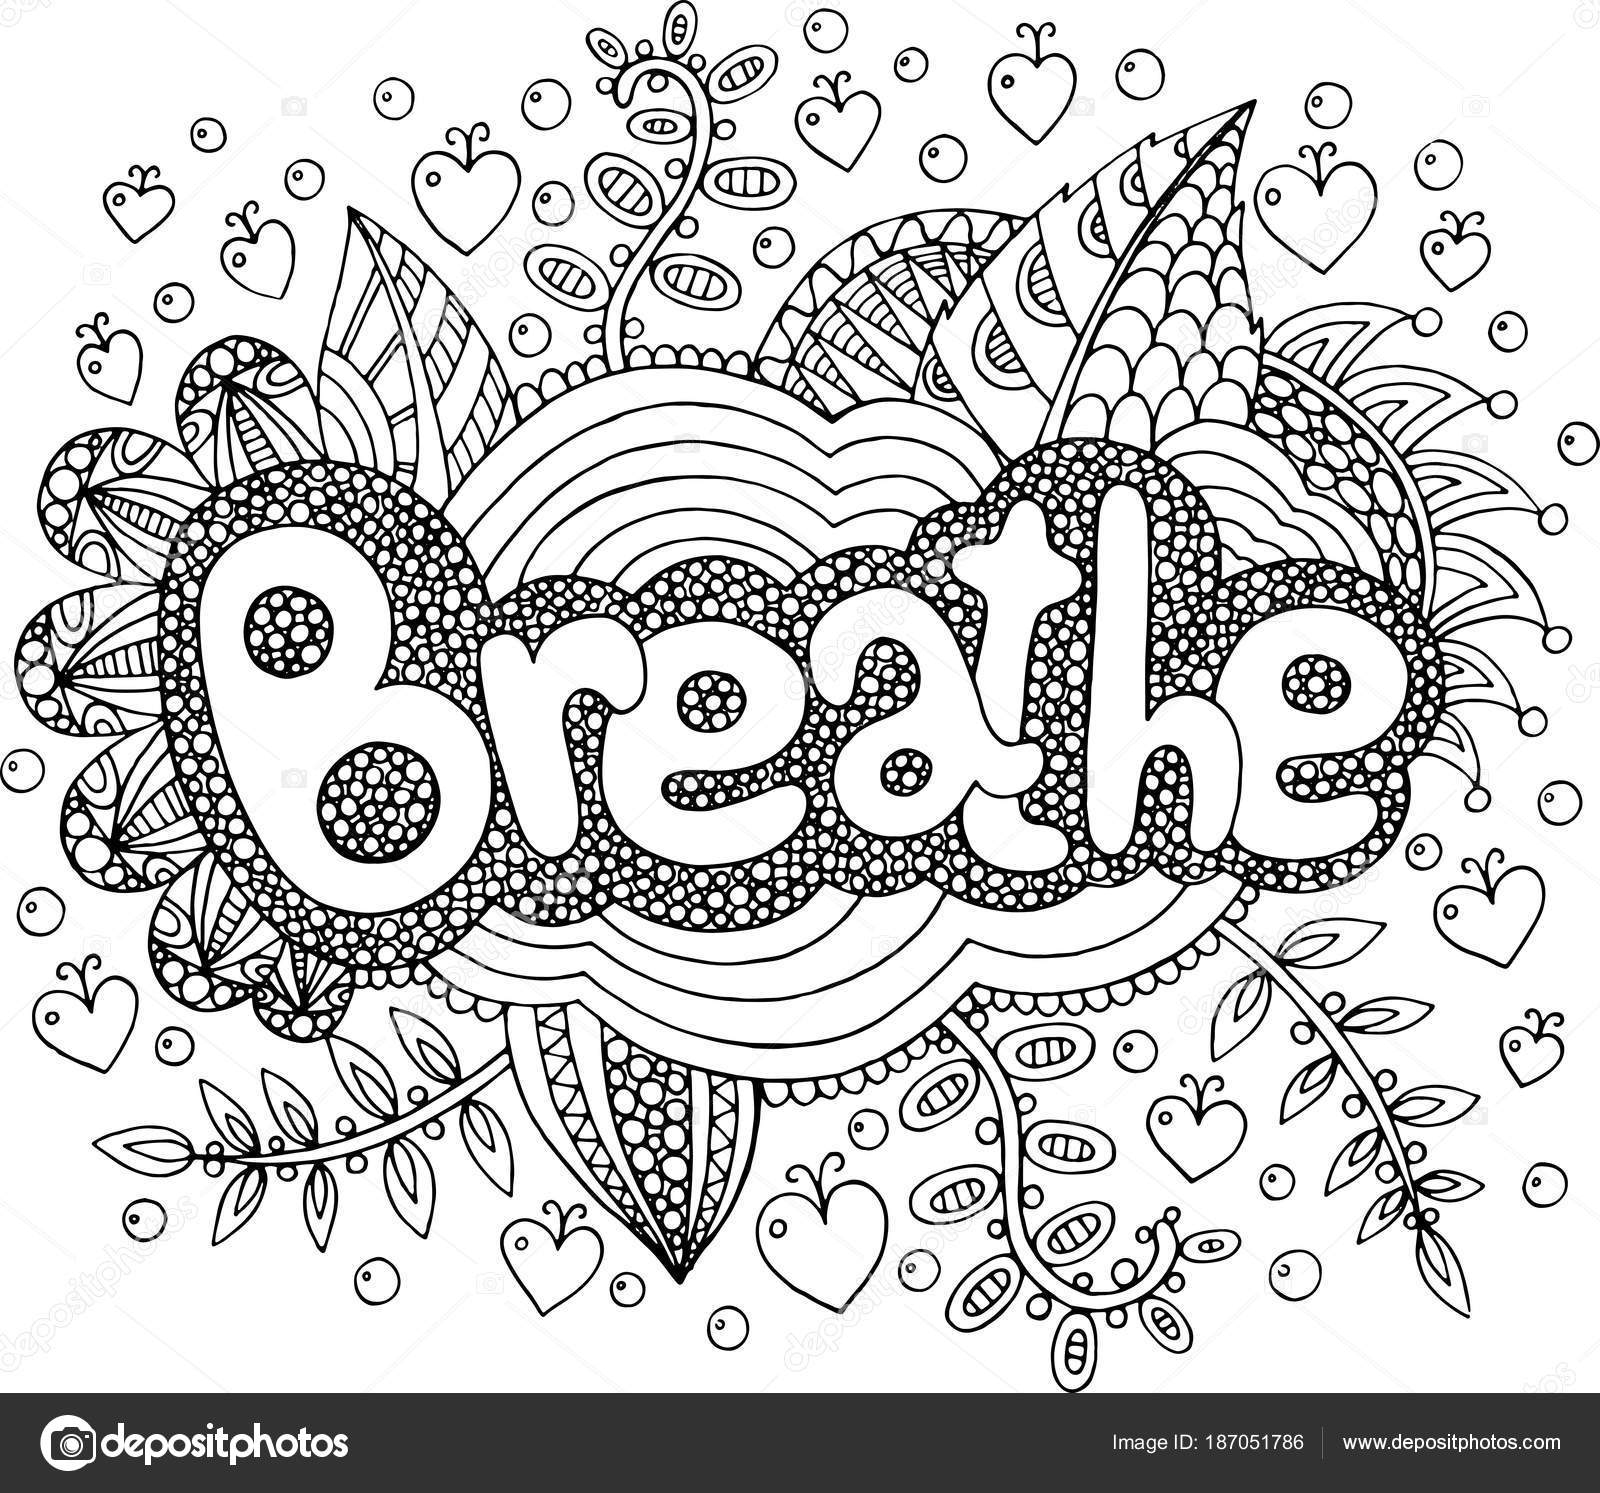 breathe coloring page coloring page for adults with